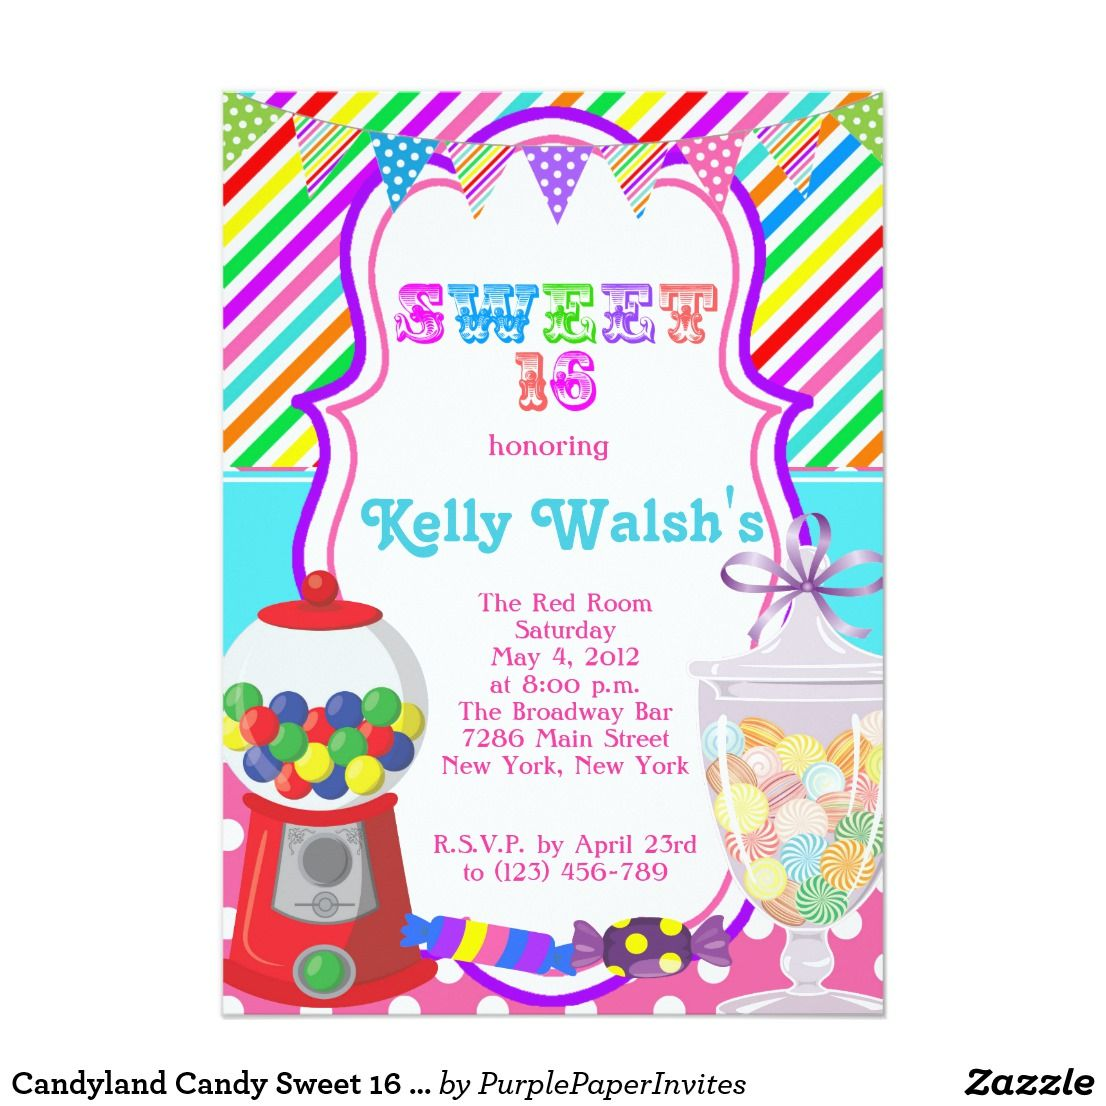 Candyland Candy Sweet 16 Birthday Invitation | Sweet 16, Sweet 16 ...